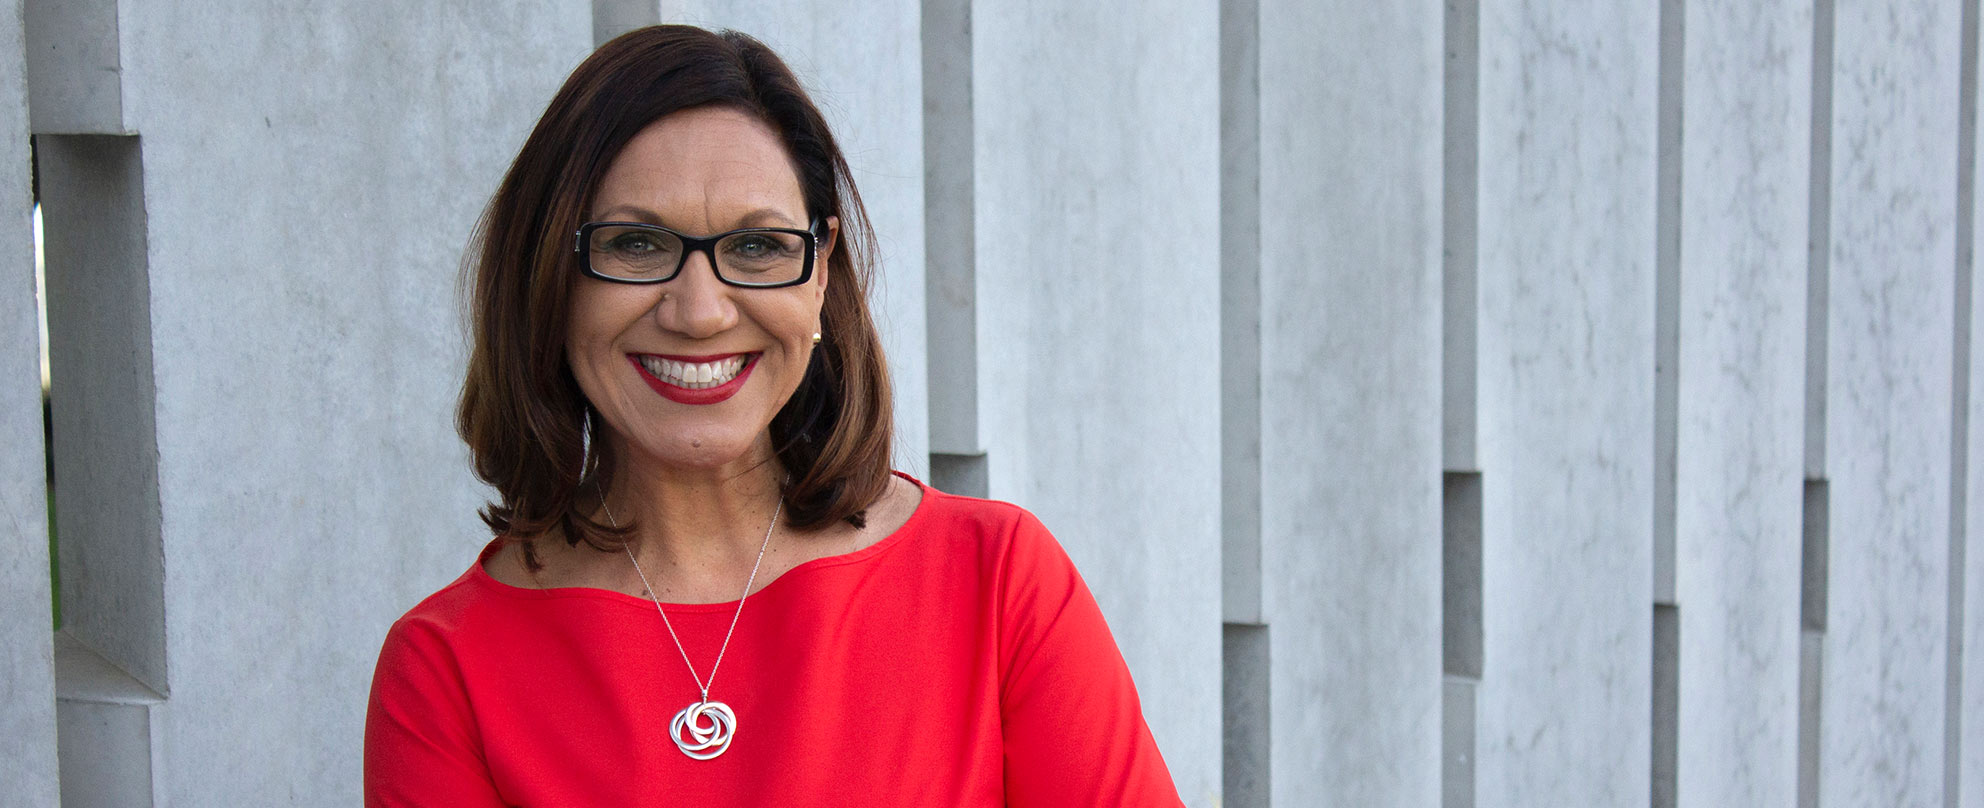 Photo of a middle-aged woman with a brown bob and dark-rimmed glasses, wearing a bright red top and matching lipstick, smiling broadly, a wall of concrete columns directly behind her.